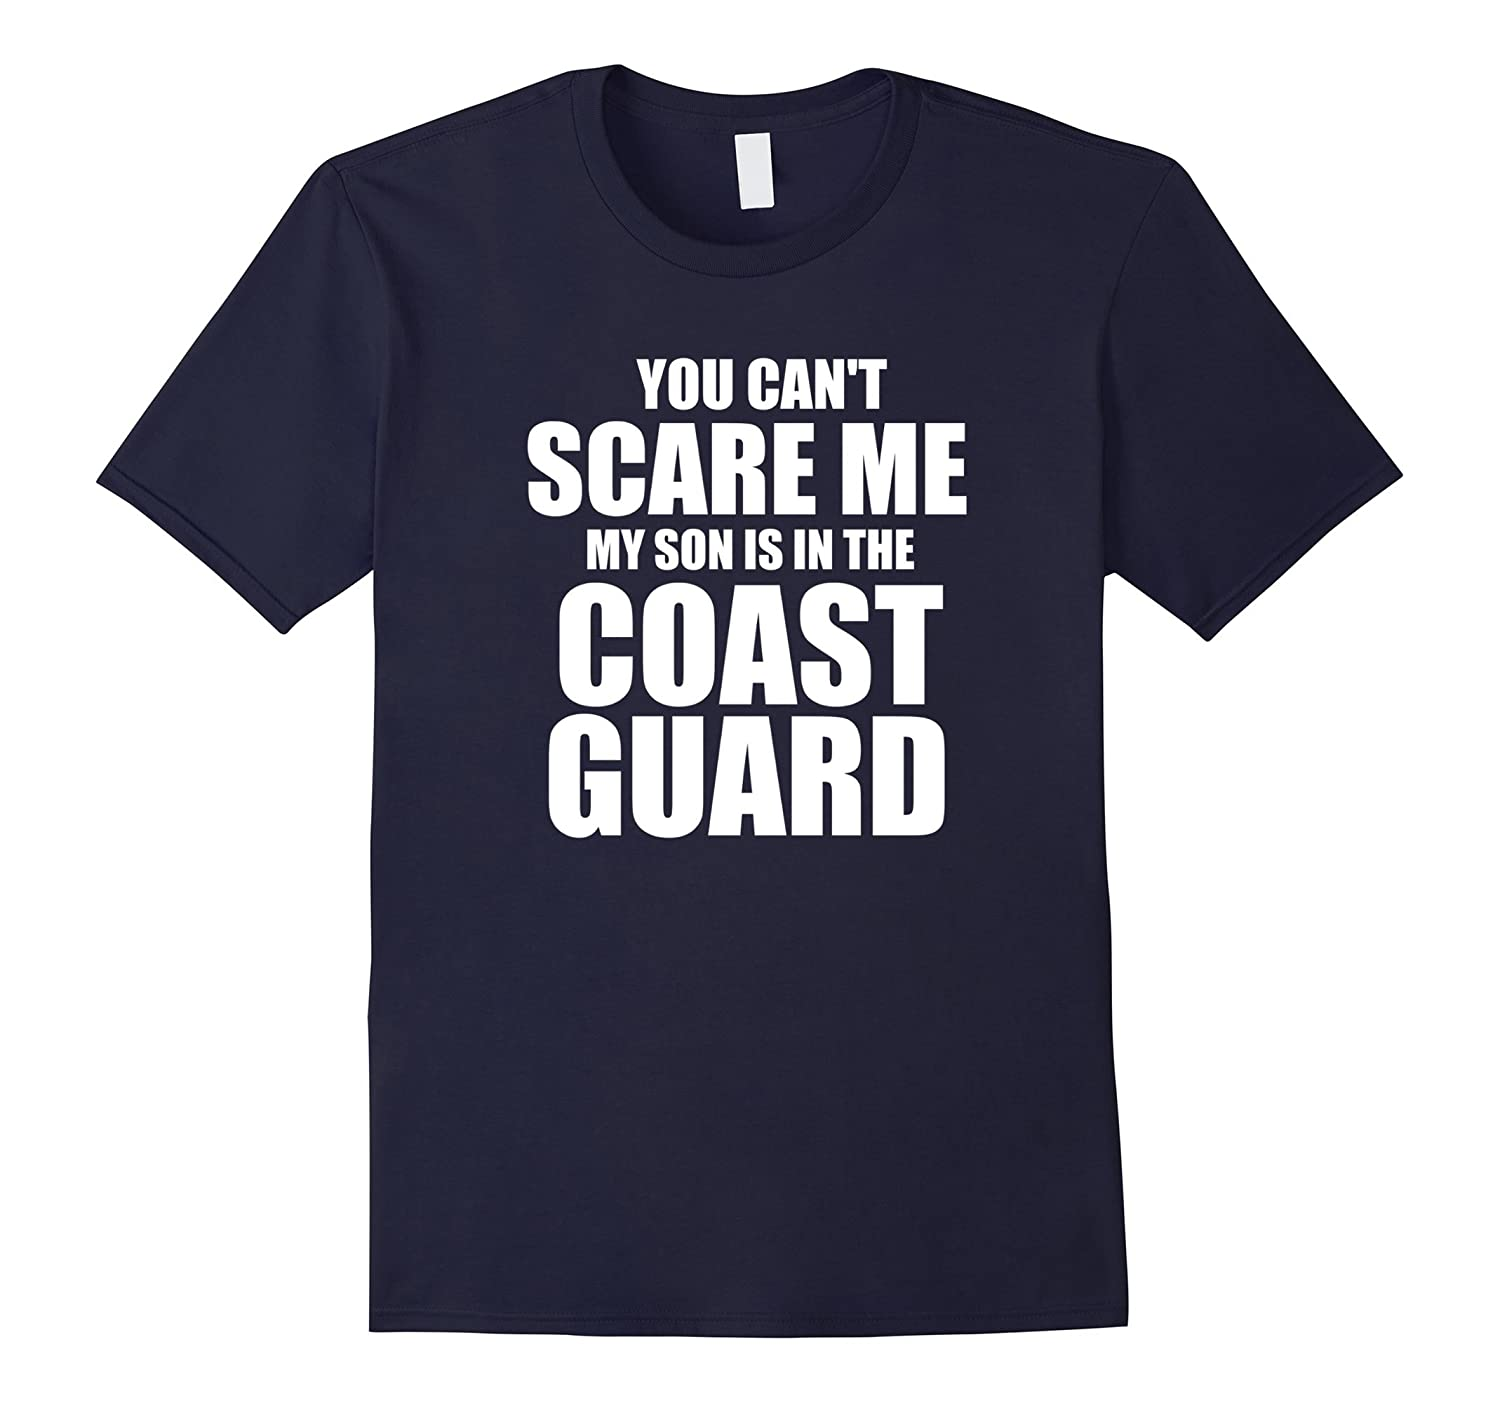 You Can't Scare me my son is in the Coast Guard shirt